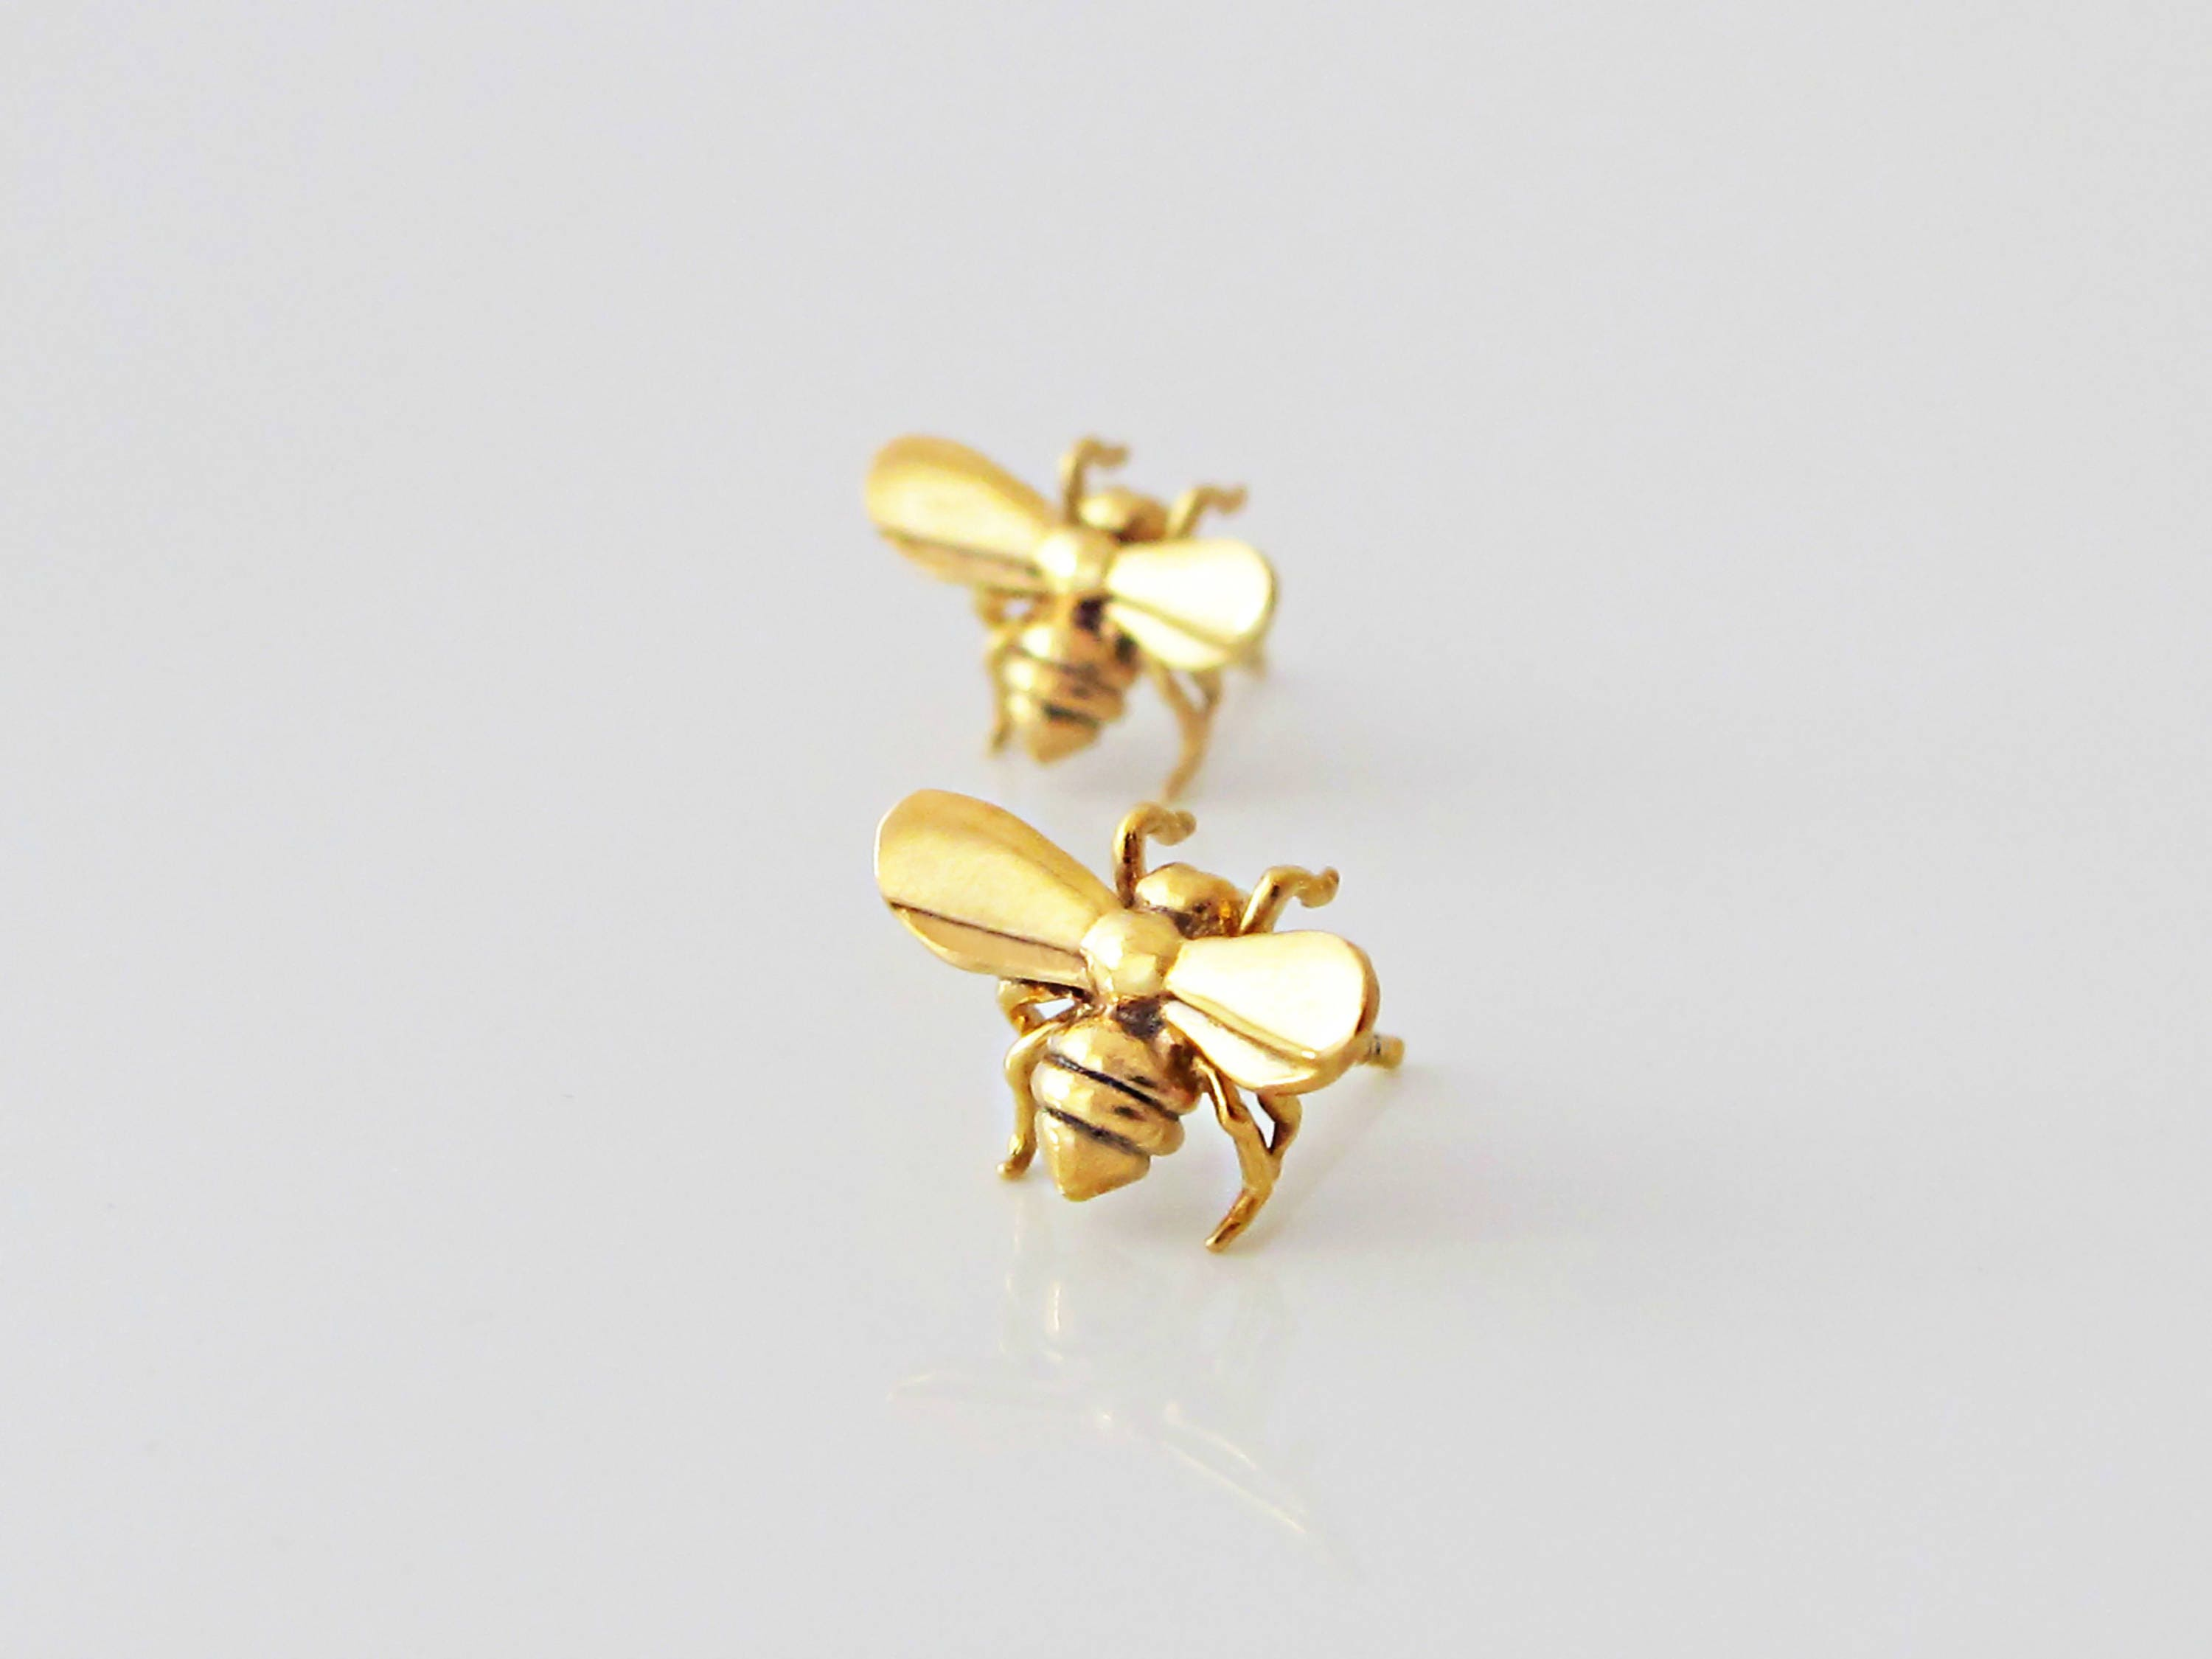 stud img bill in skinner styling bee personal jewellery lab gold baby shop earrings mutrend fashion accessories